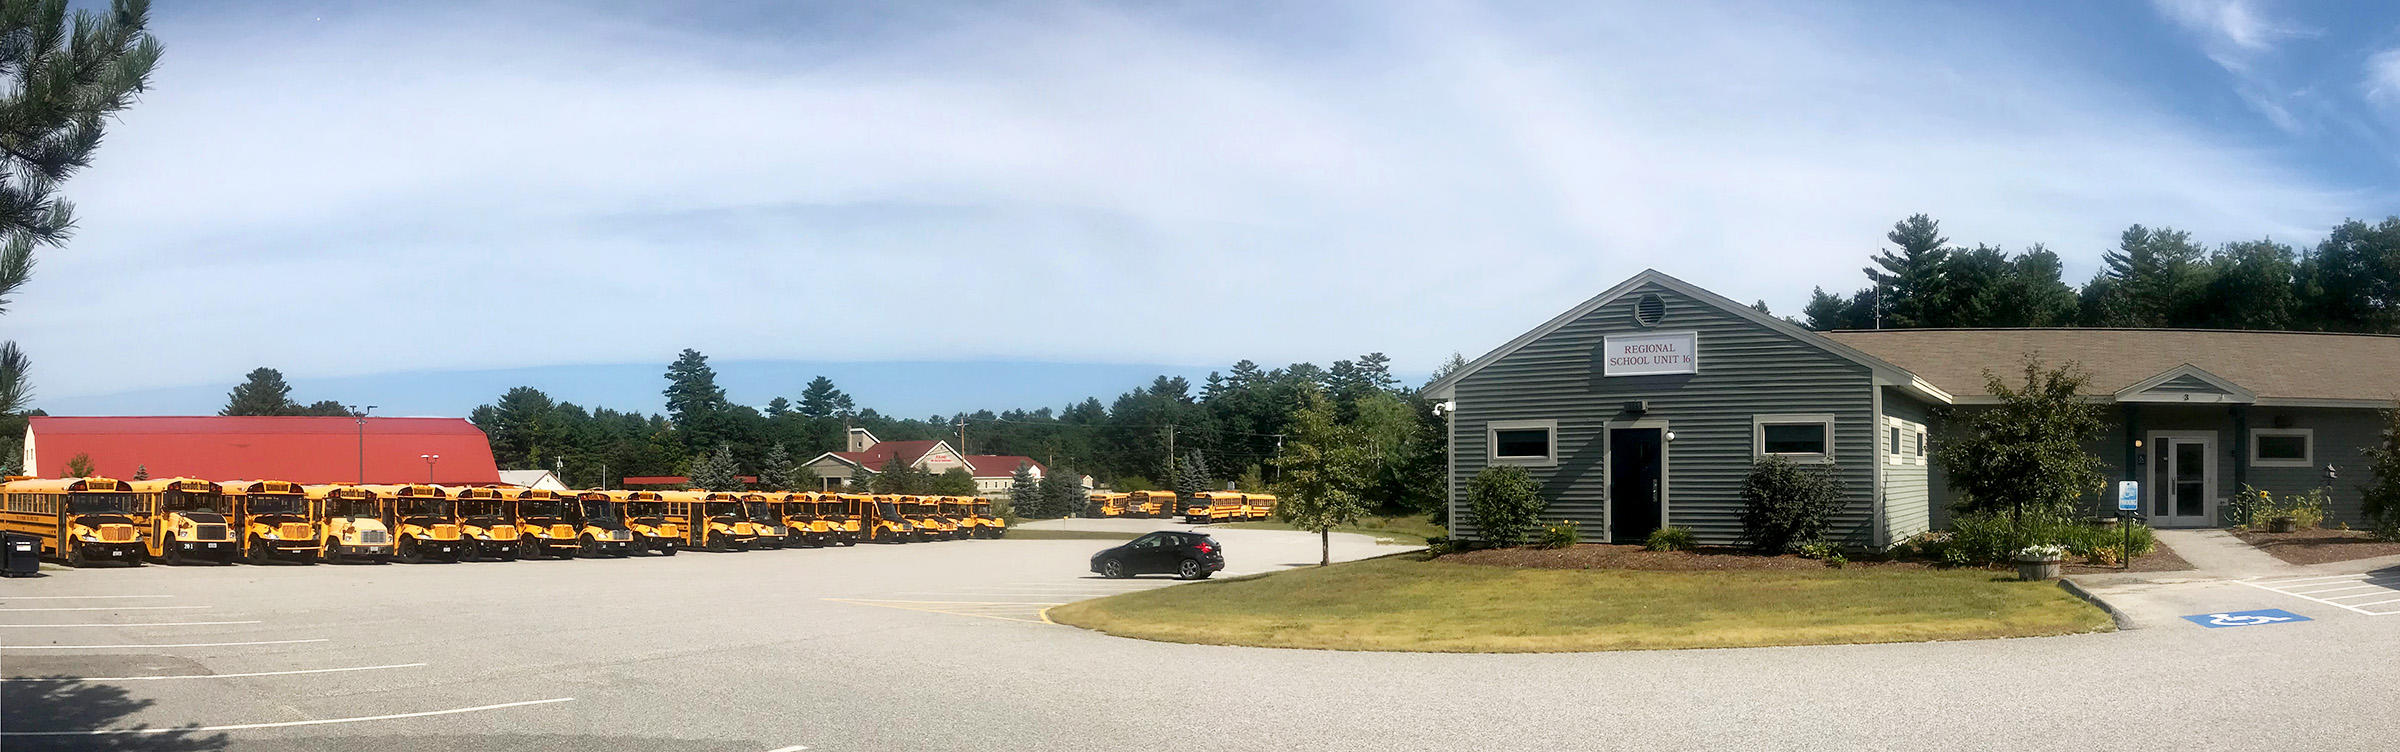 Photo of RSU 16's Central Office Building with school buses lined up in the bus area.